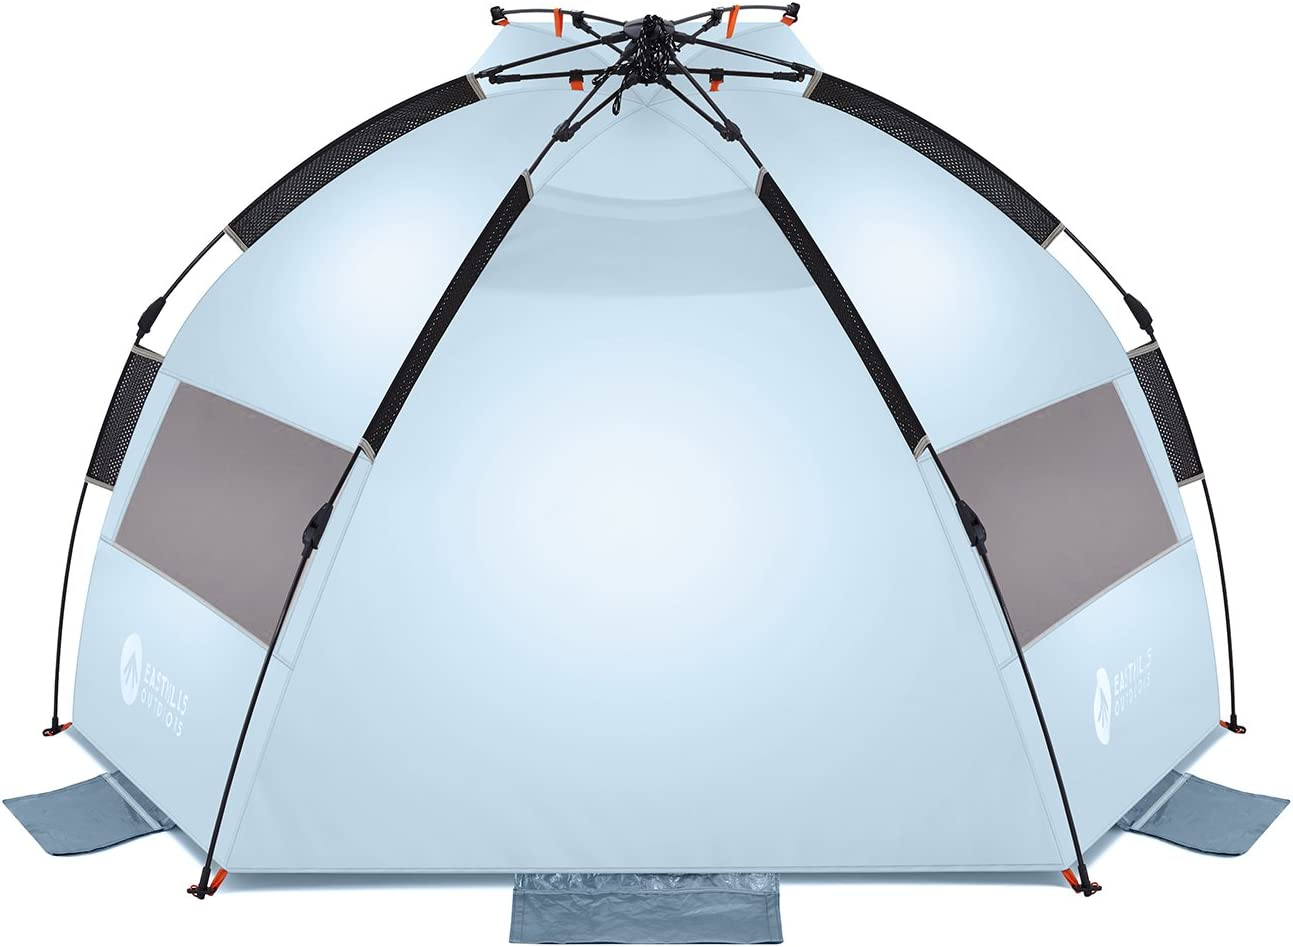 Easthills Outdoors Instant Shader Lite Easy Up Portable Beach Tent Sun Shelter UPF 50+